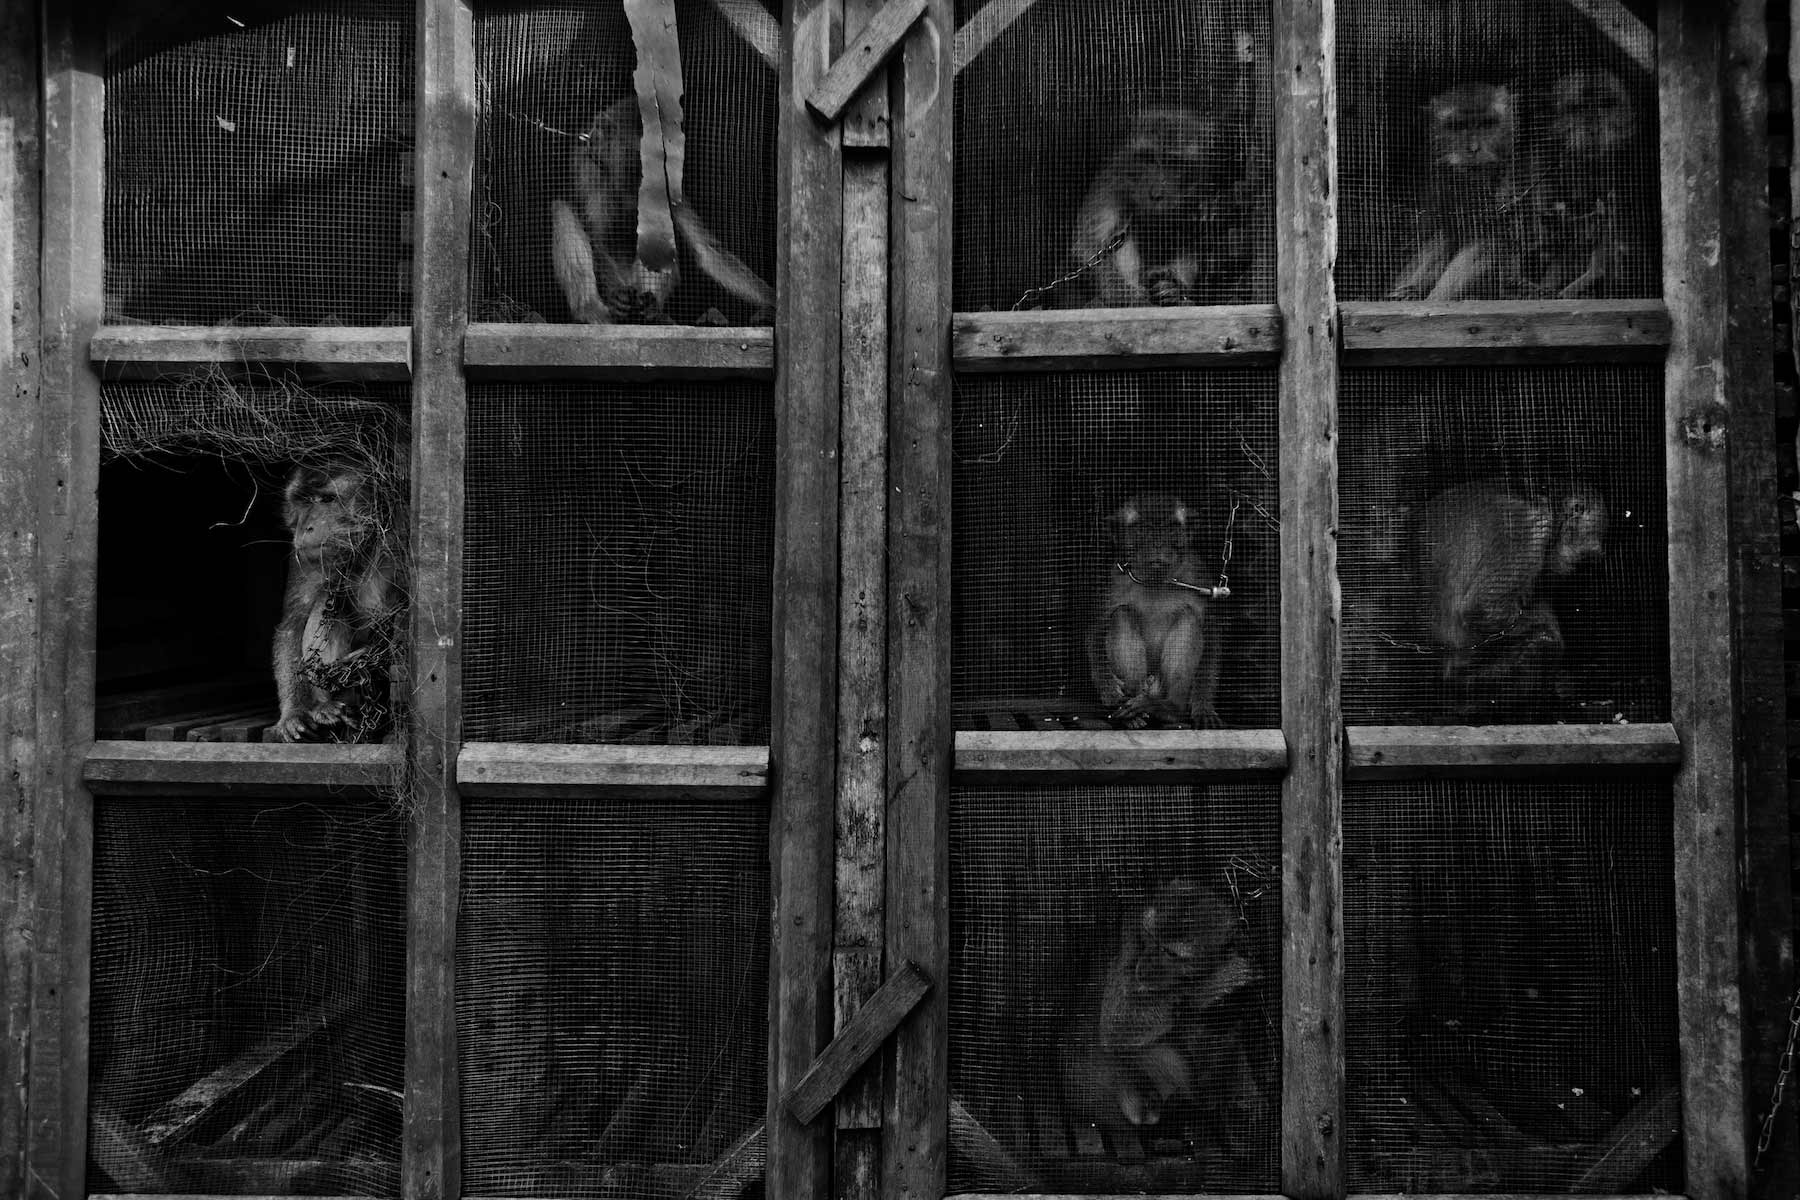 performing monkeys sit in cage urban village Jakarta, Indonesia